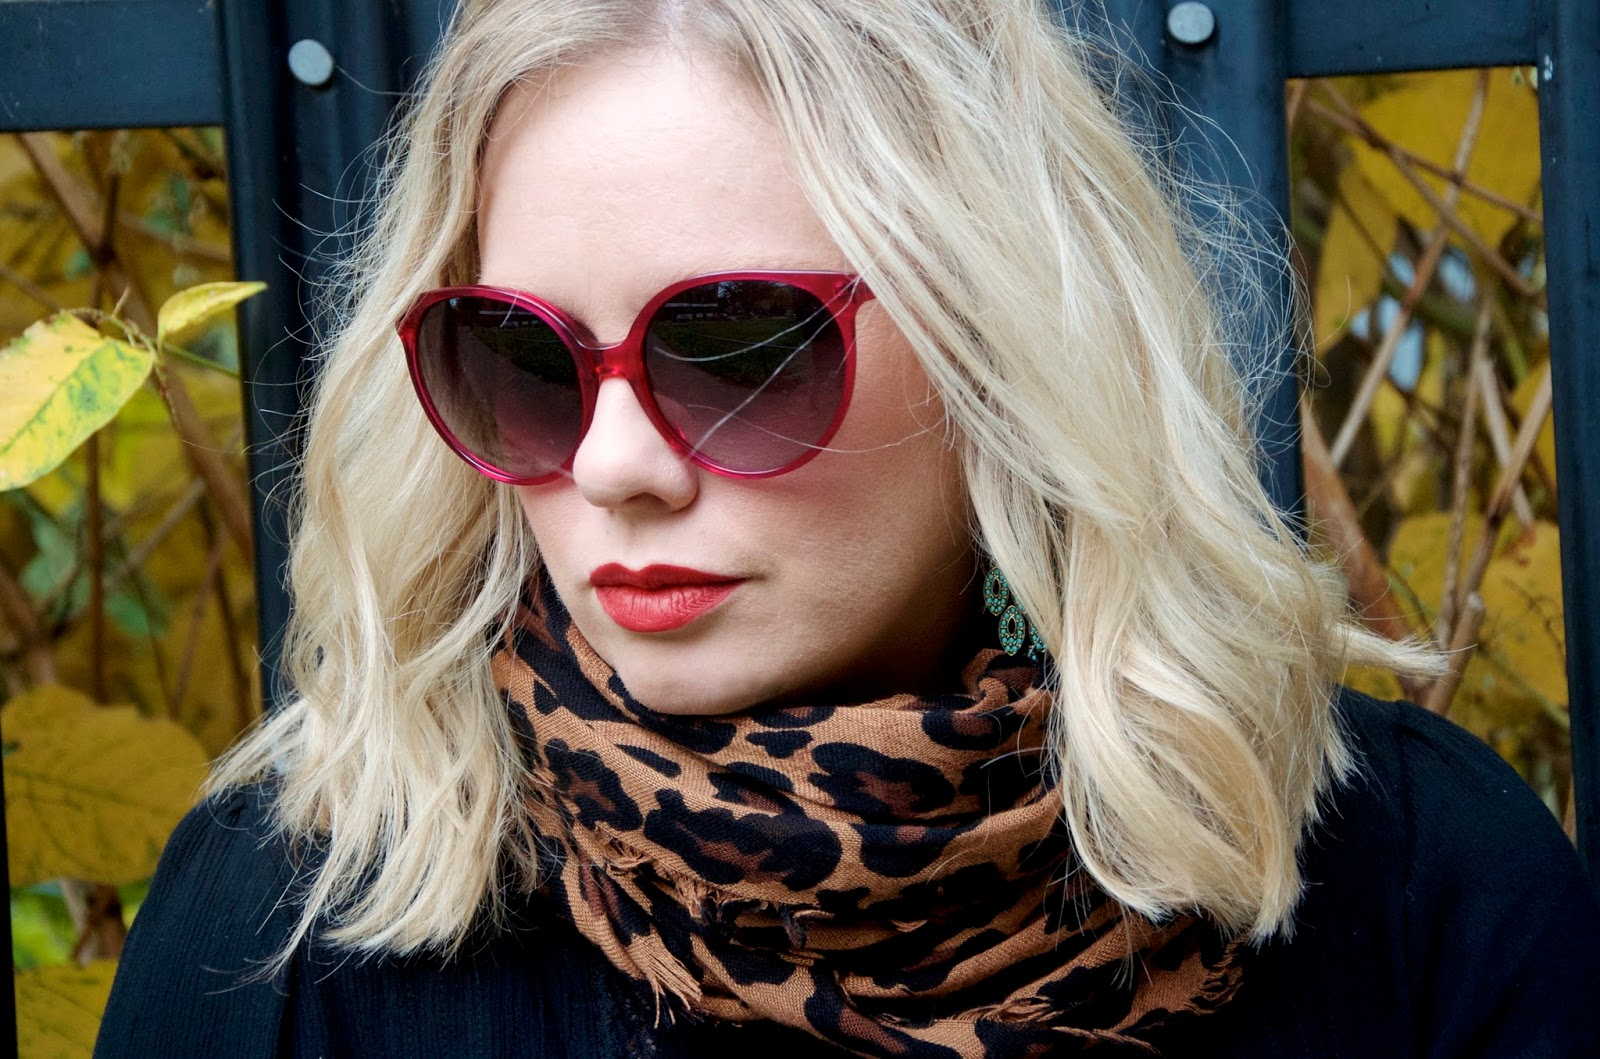 Turquoise earrings, leopard scarf, red lipstick, cerise sunglasses